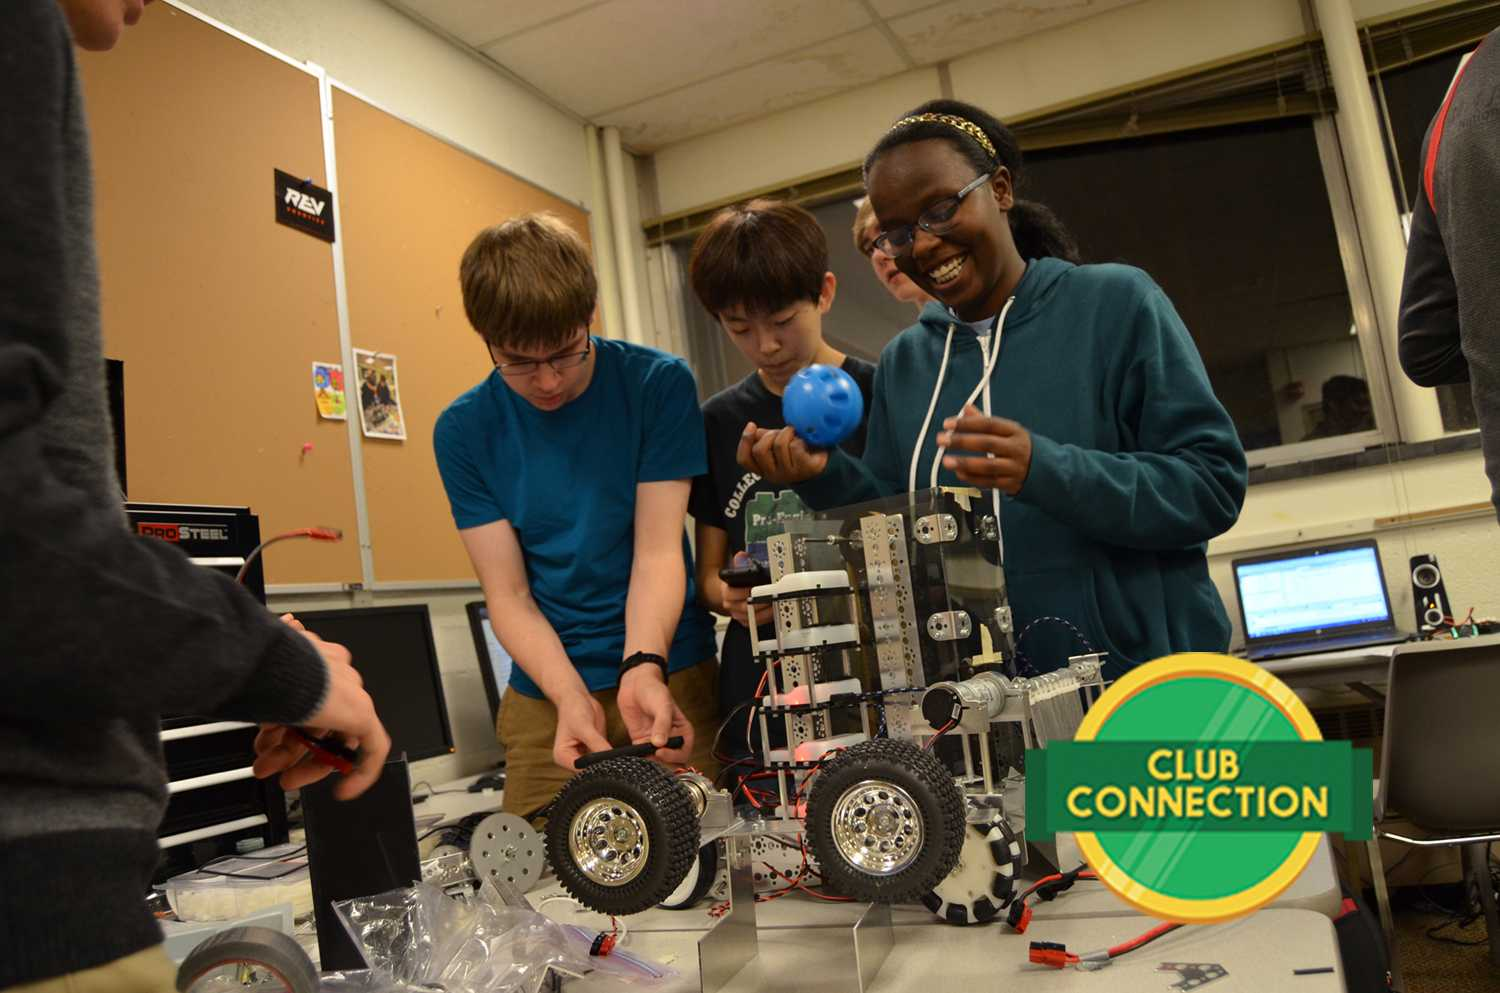 Yegor Kuznetsov '20, Jeongwoo Seo '18, and Eman Elsheikh '18 work on their robot's elevator on Tuesday at the Roosevelt education center. The elevator will carry the balls to the launcher